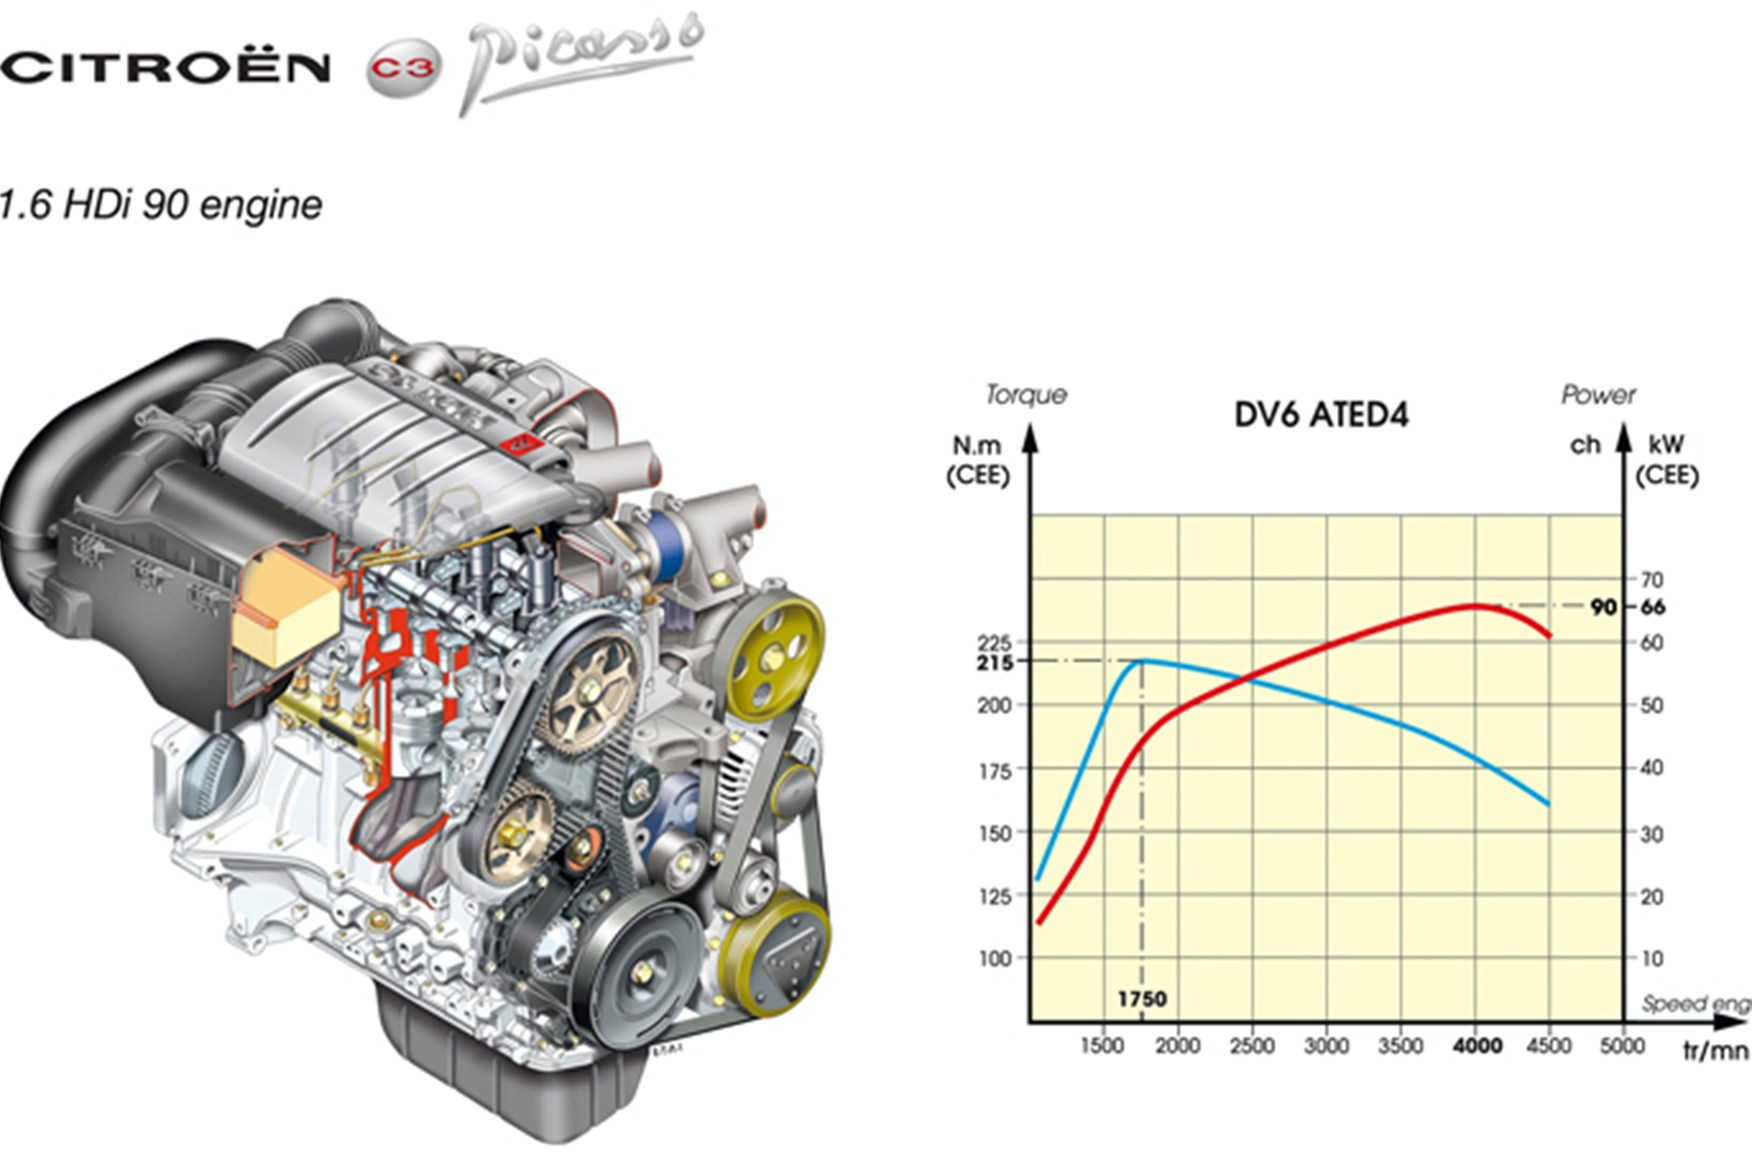 Citroen C3 Hdi Wiring Diagram Libraries Engine Change Your Idea With Diagramcitro N Picasso 1 6 Long Term Test Review Car Magazine Rh Carmagazine Co Uk